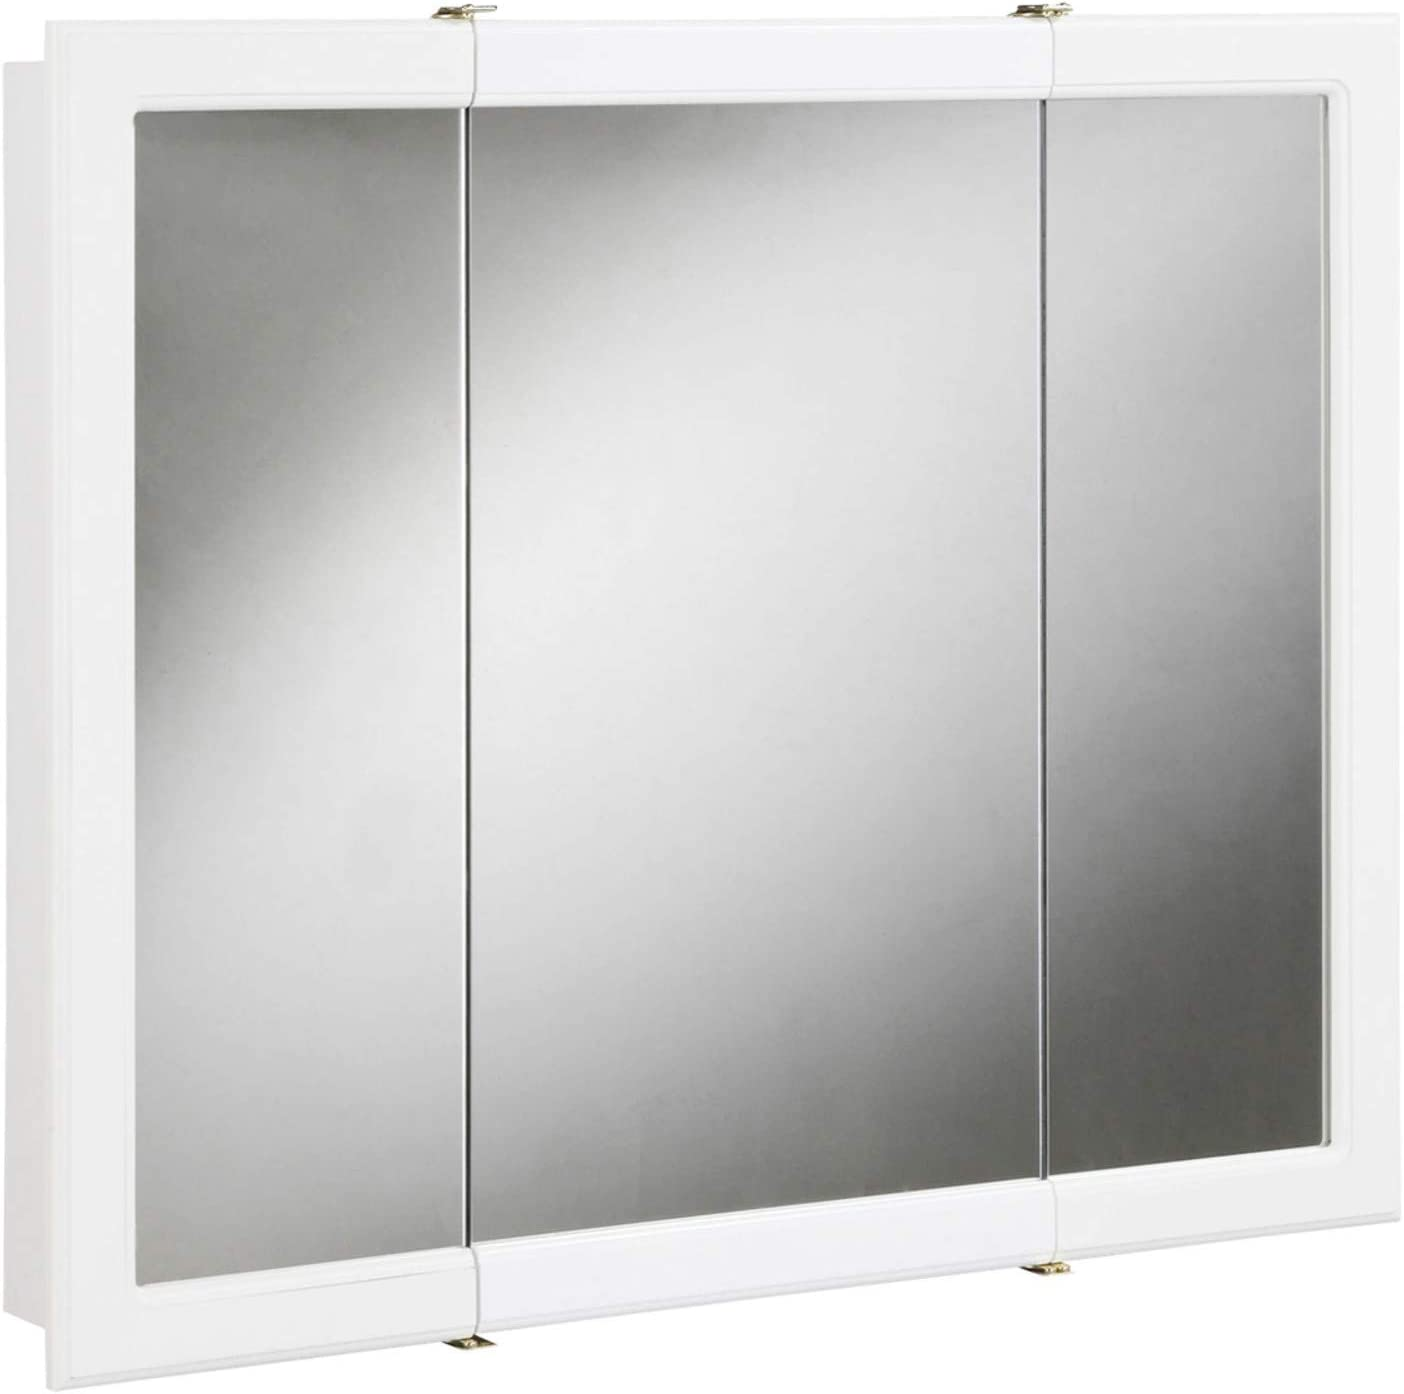 "Design House 531434 Concord Mirrored Medicine Cabinet, White, 30""x30"""